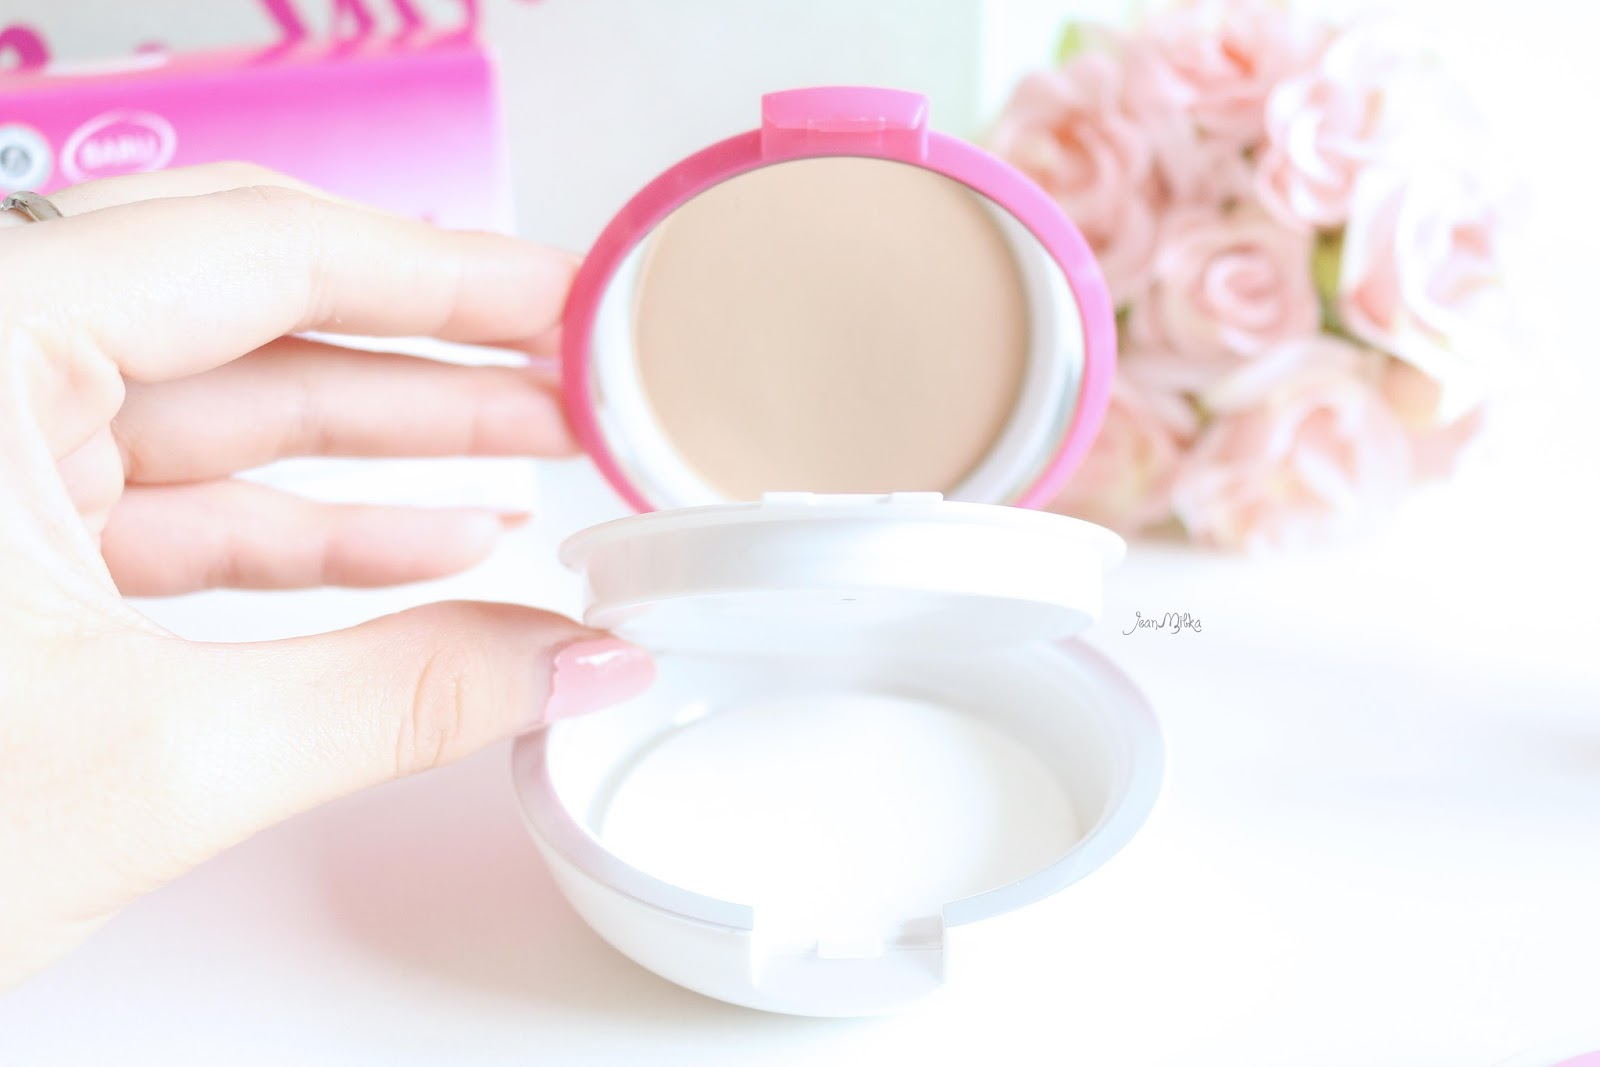 review, marina, marina smooth and glow, bb cream, two way cake, powdery foundation, compact powder, drugstore, makeup, makeup murah, smooth and glow uv, saatnya bersinar, two way cake, marina two way cake